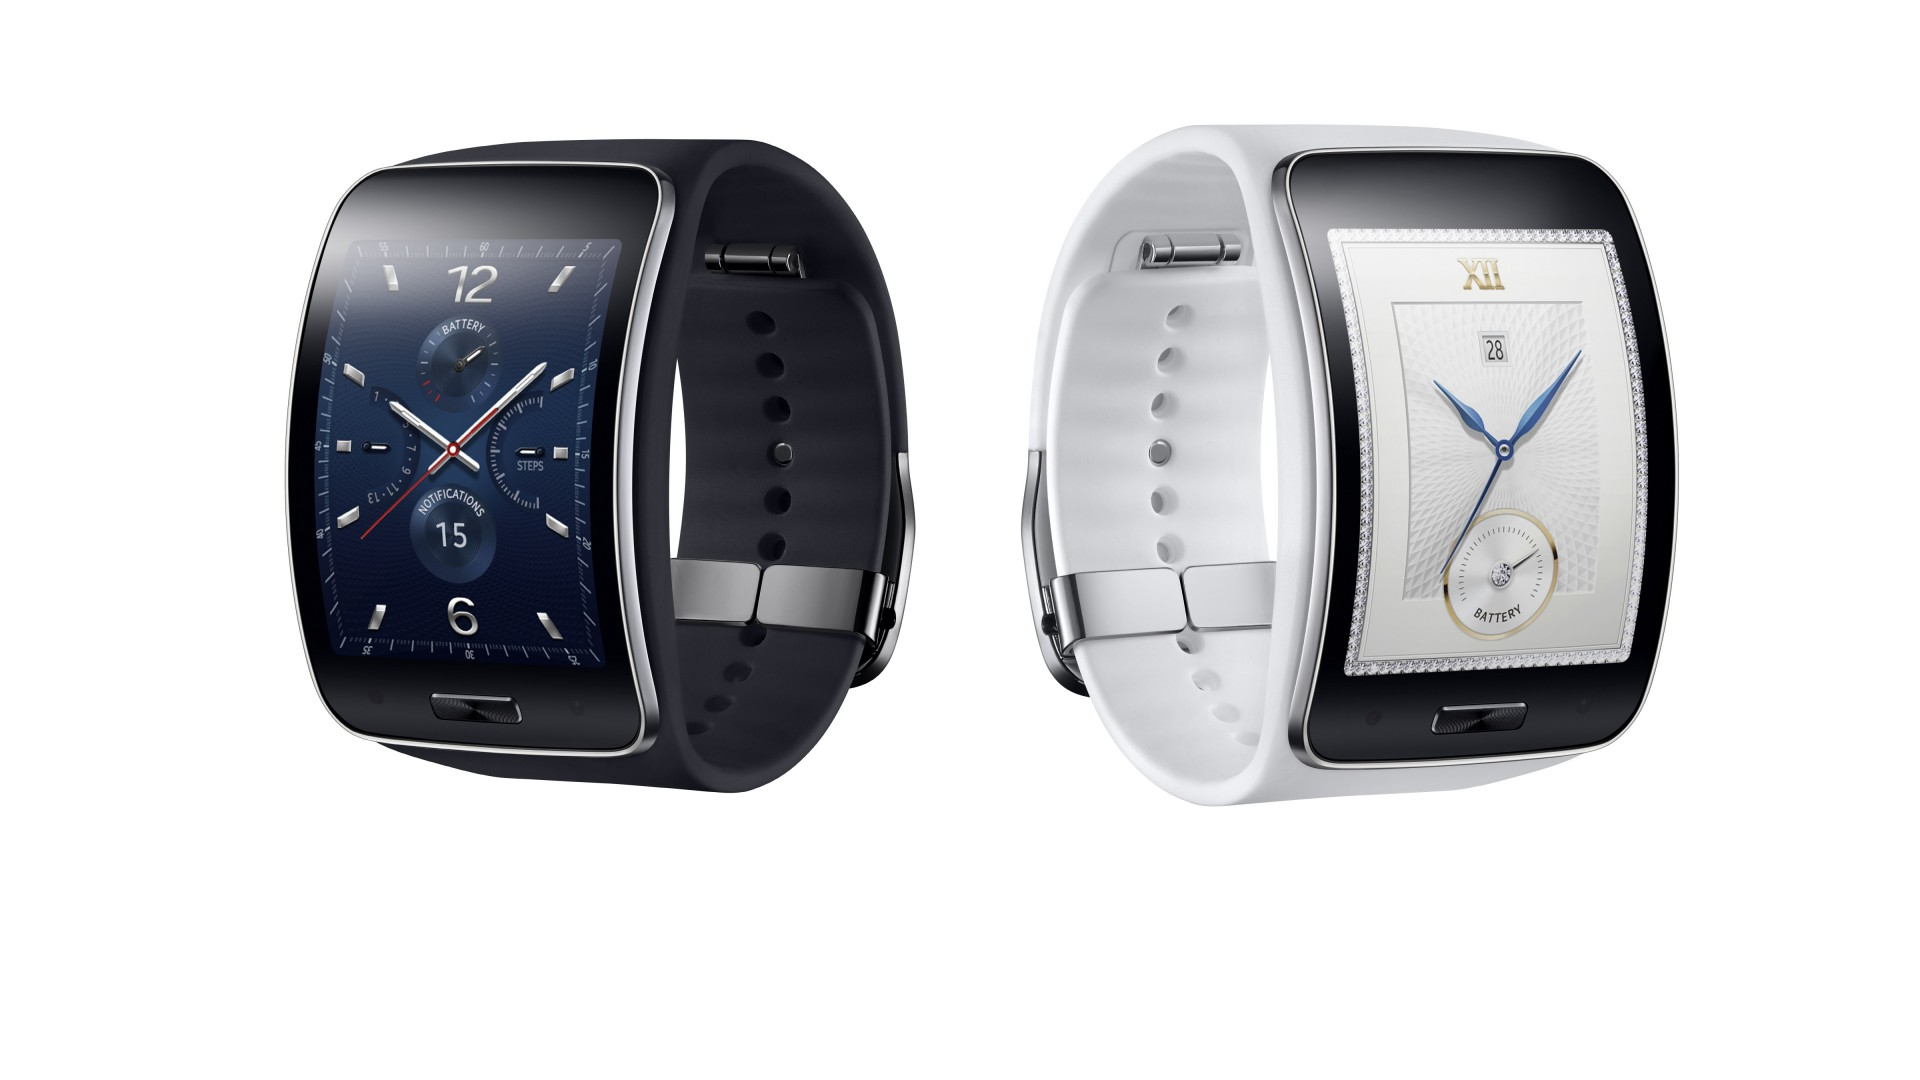 Samsung Gear S, watches, luxury watches, smart watches review, metal, display (horizontal)